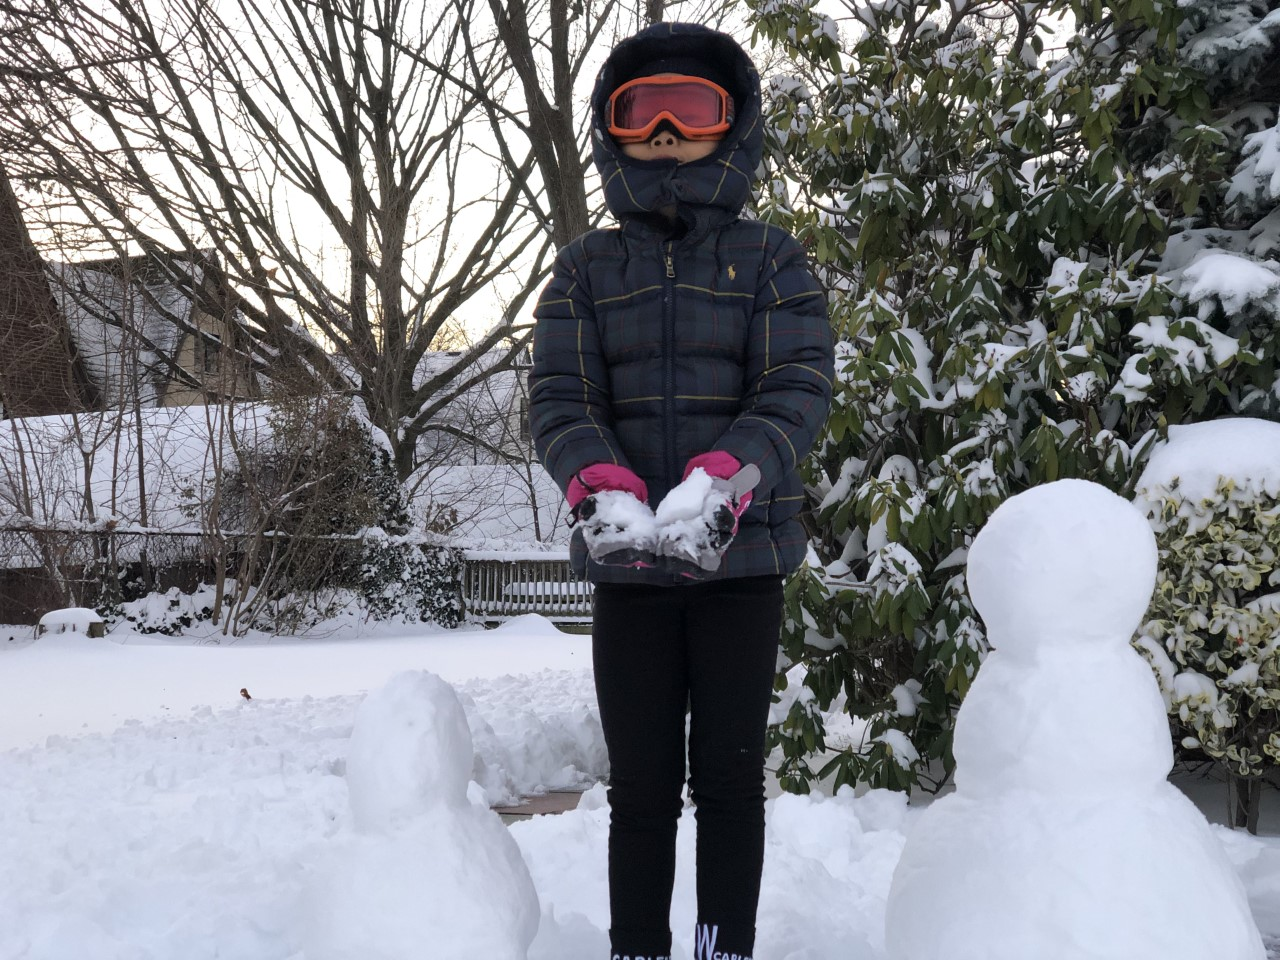 a boy in black standing next to a snowman